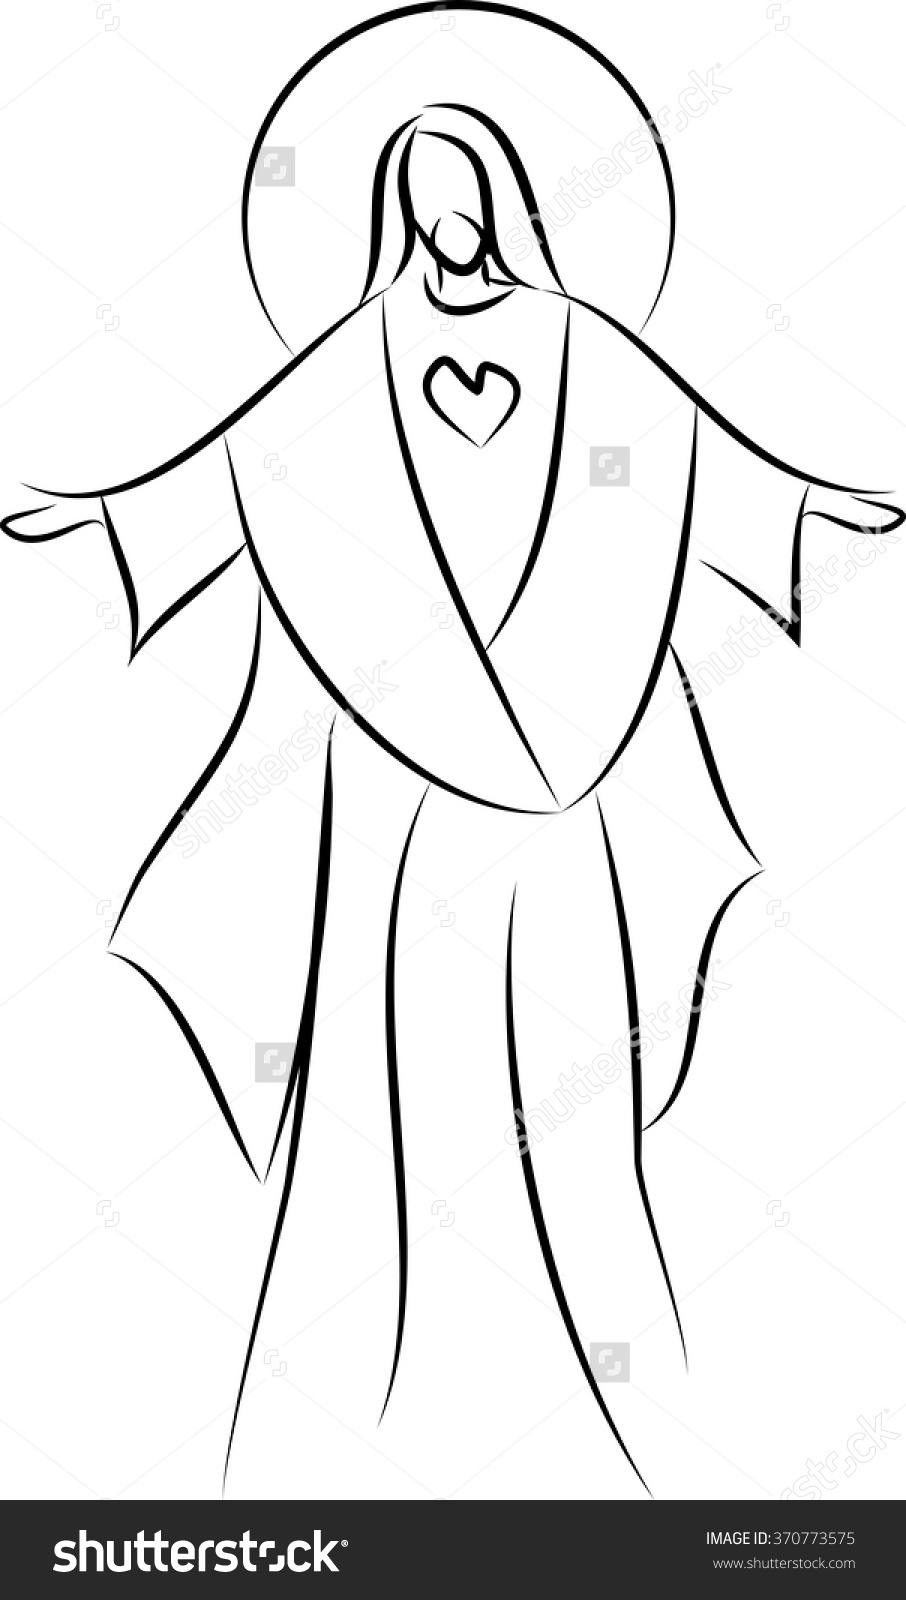 Clipart sacred heart of jesus.